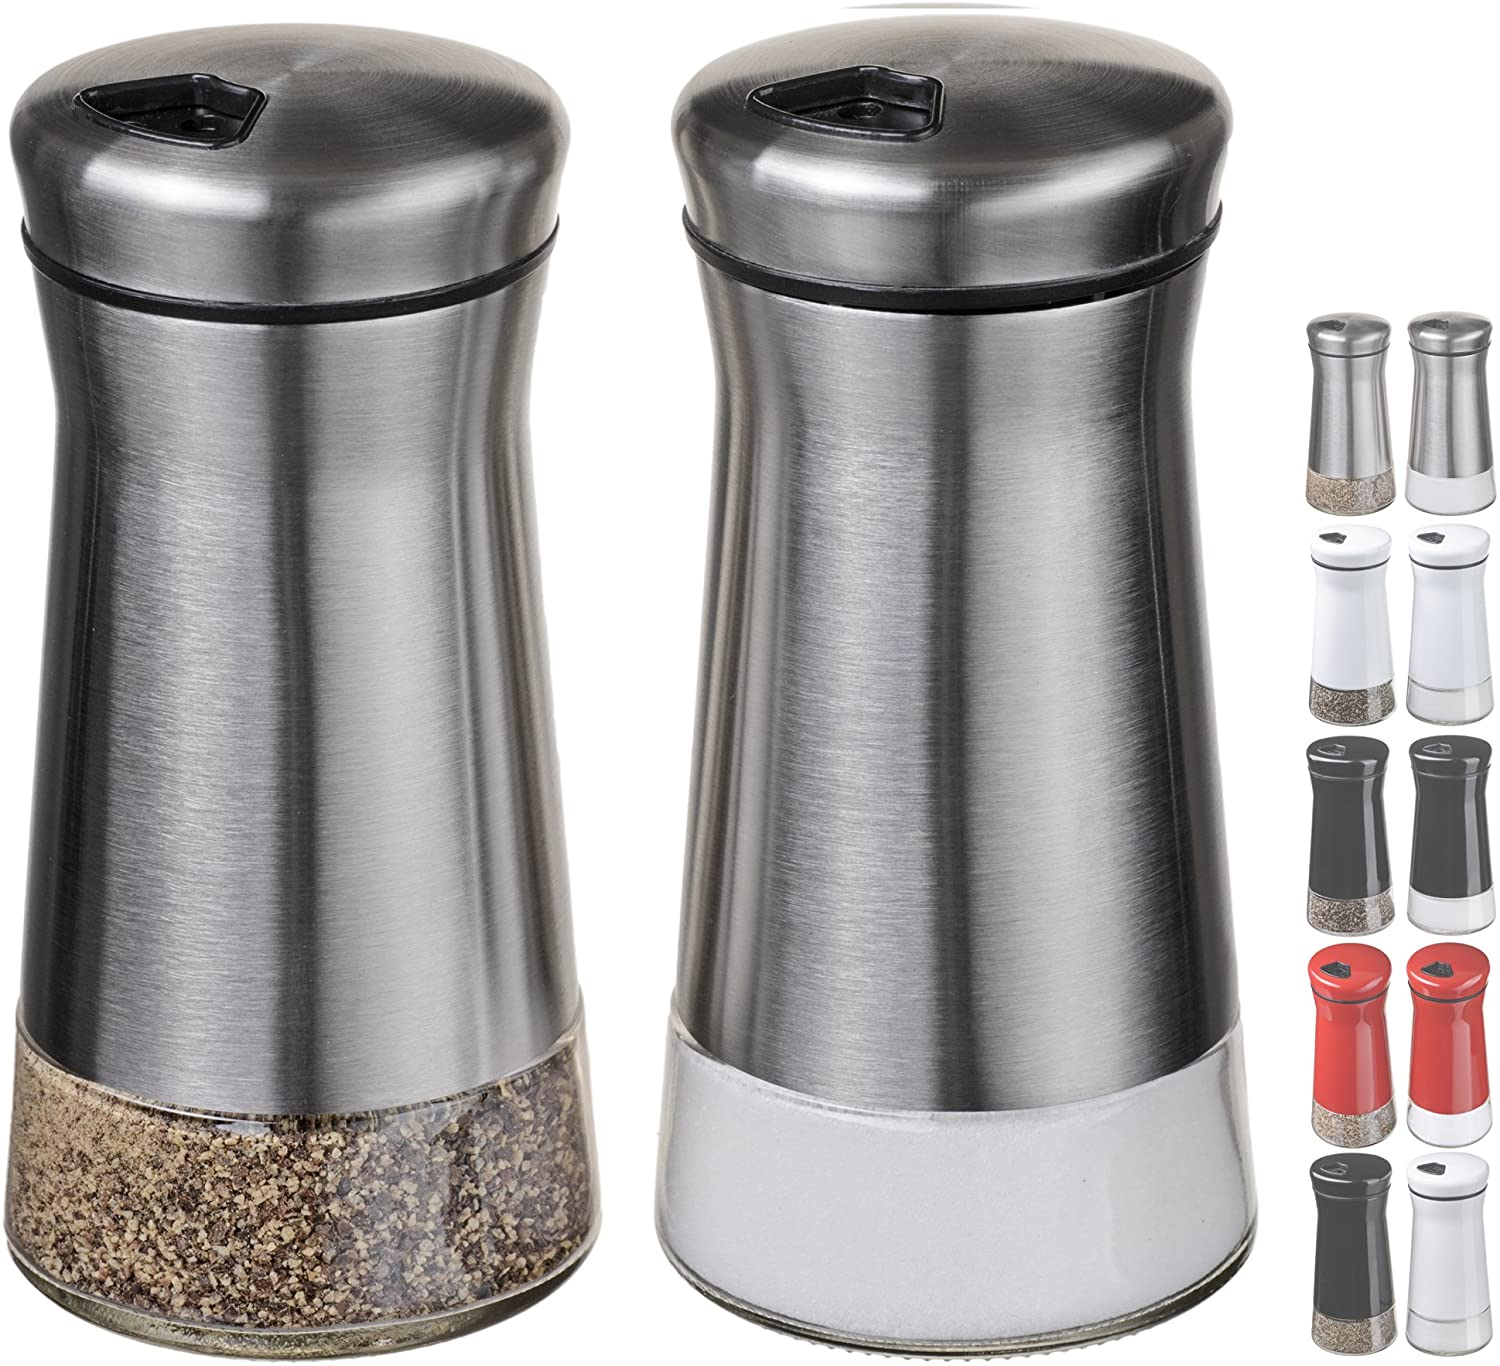 Amazon Com Chefvantage Salt And Pepper Shakers Set With Adjustable Holes Stainless Steel Kitchen Dining